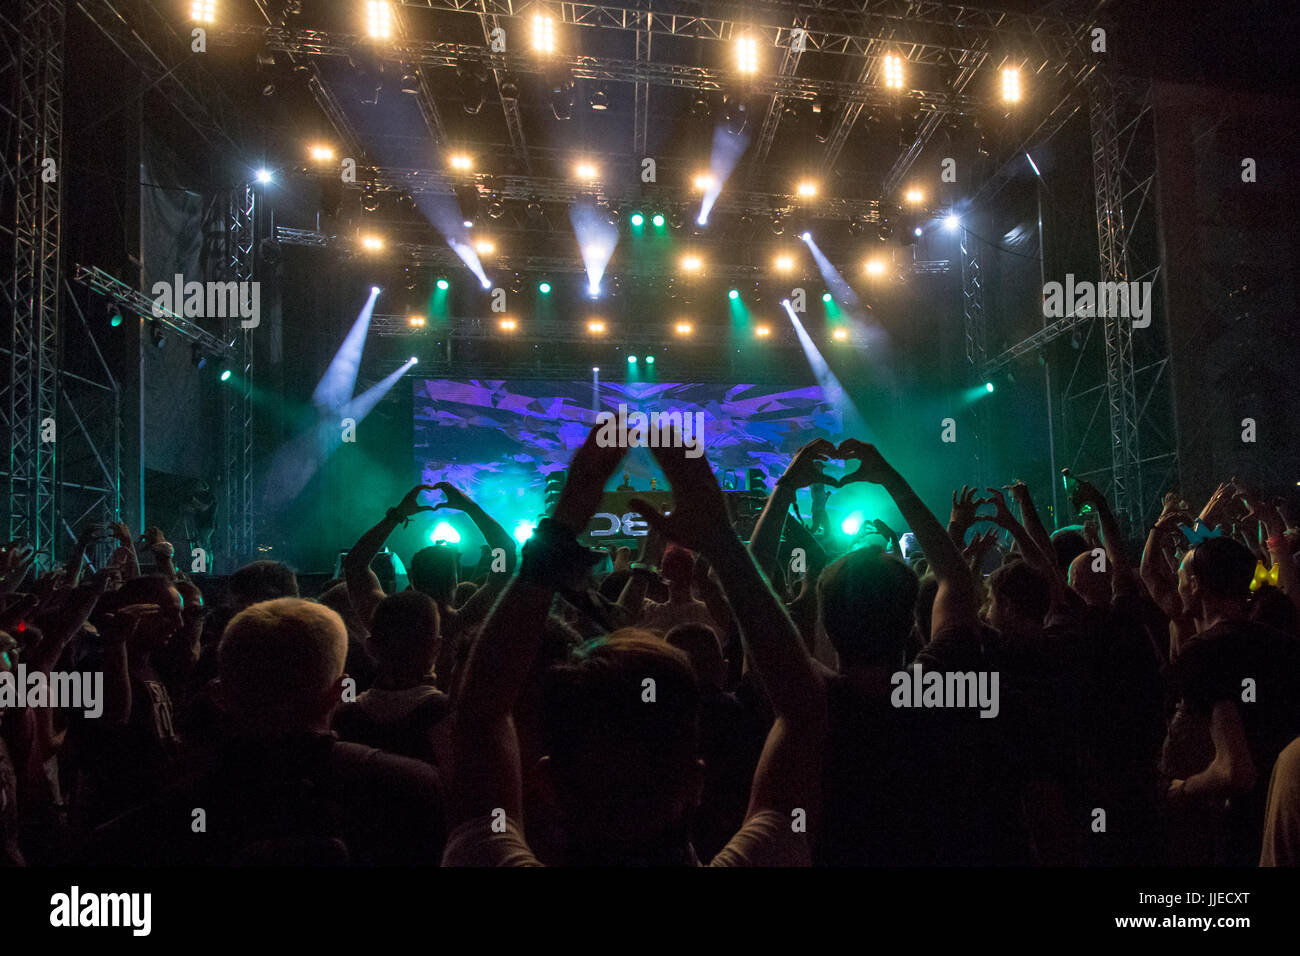 Bad Dj Set Stage Name Stock Photos And Stage Name Stock Images Alamy